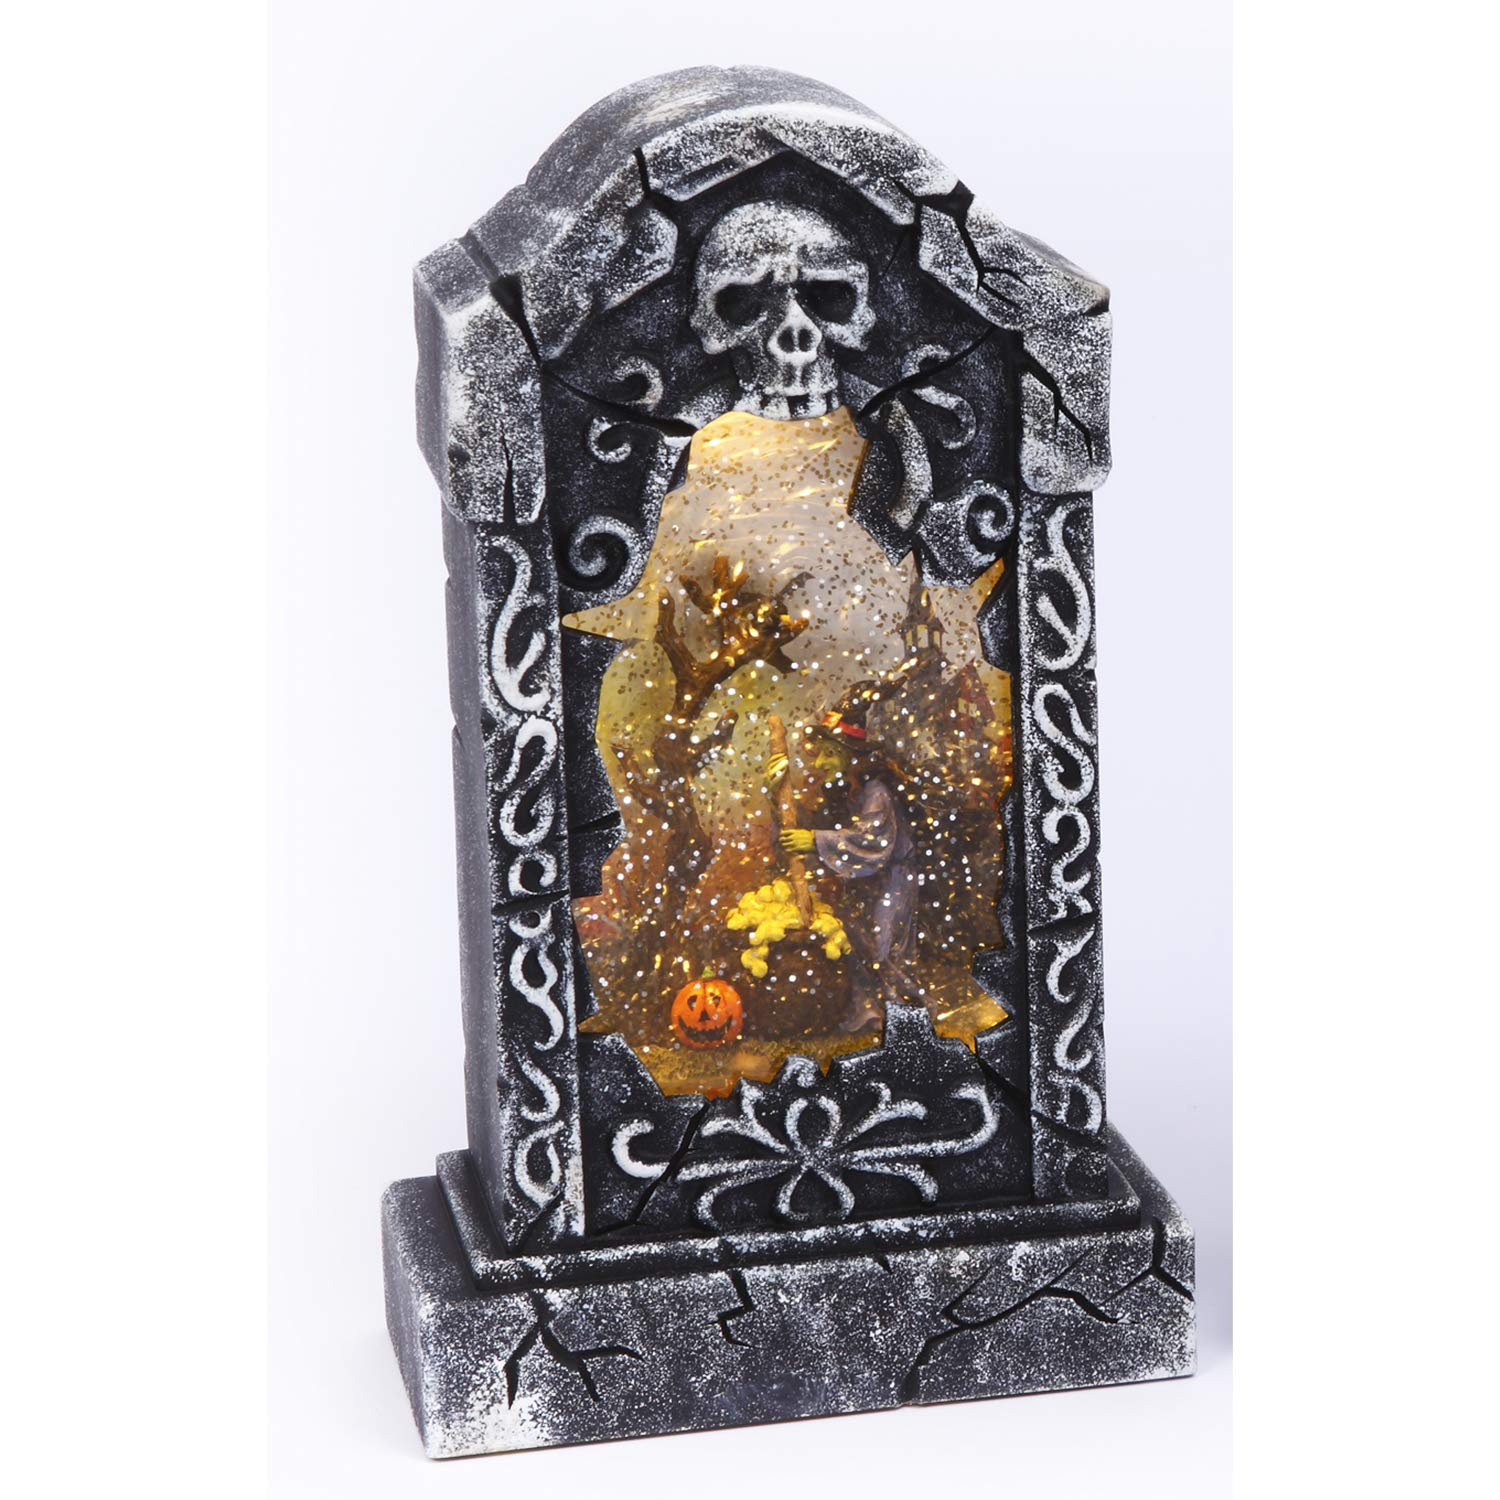 Spooky Light Up Animated Tombstone Water Globe with Spinning Halloween Figures – Tabletop Halloween Decoration Witch